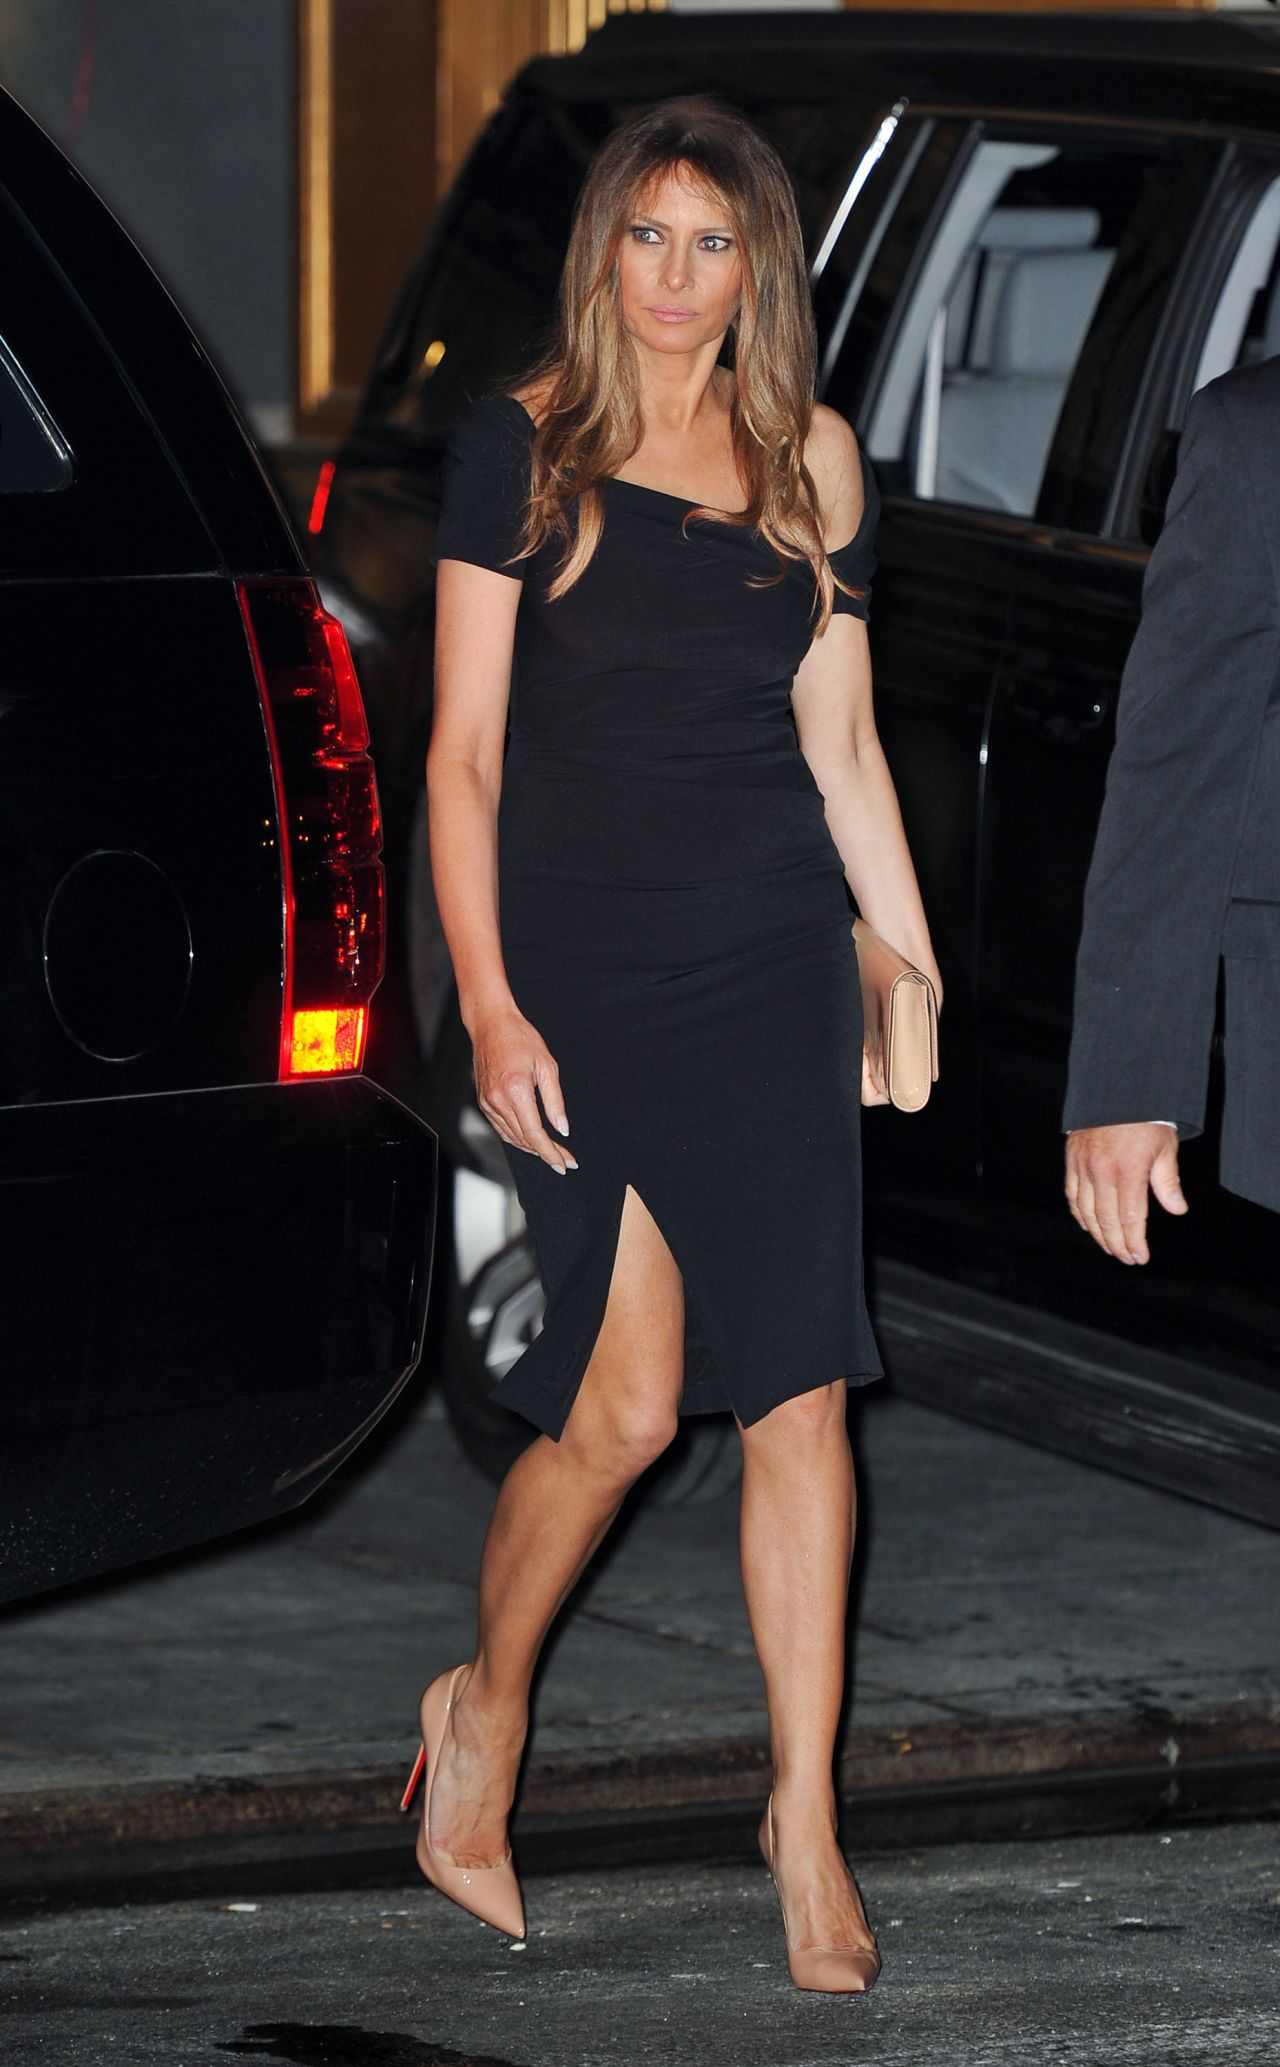 Melania Trump - Afrejse Polo Club Restaurant I Nyc-5350